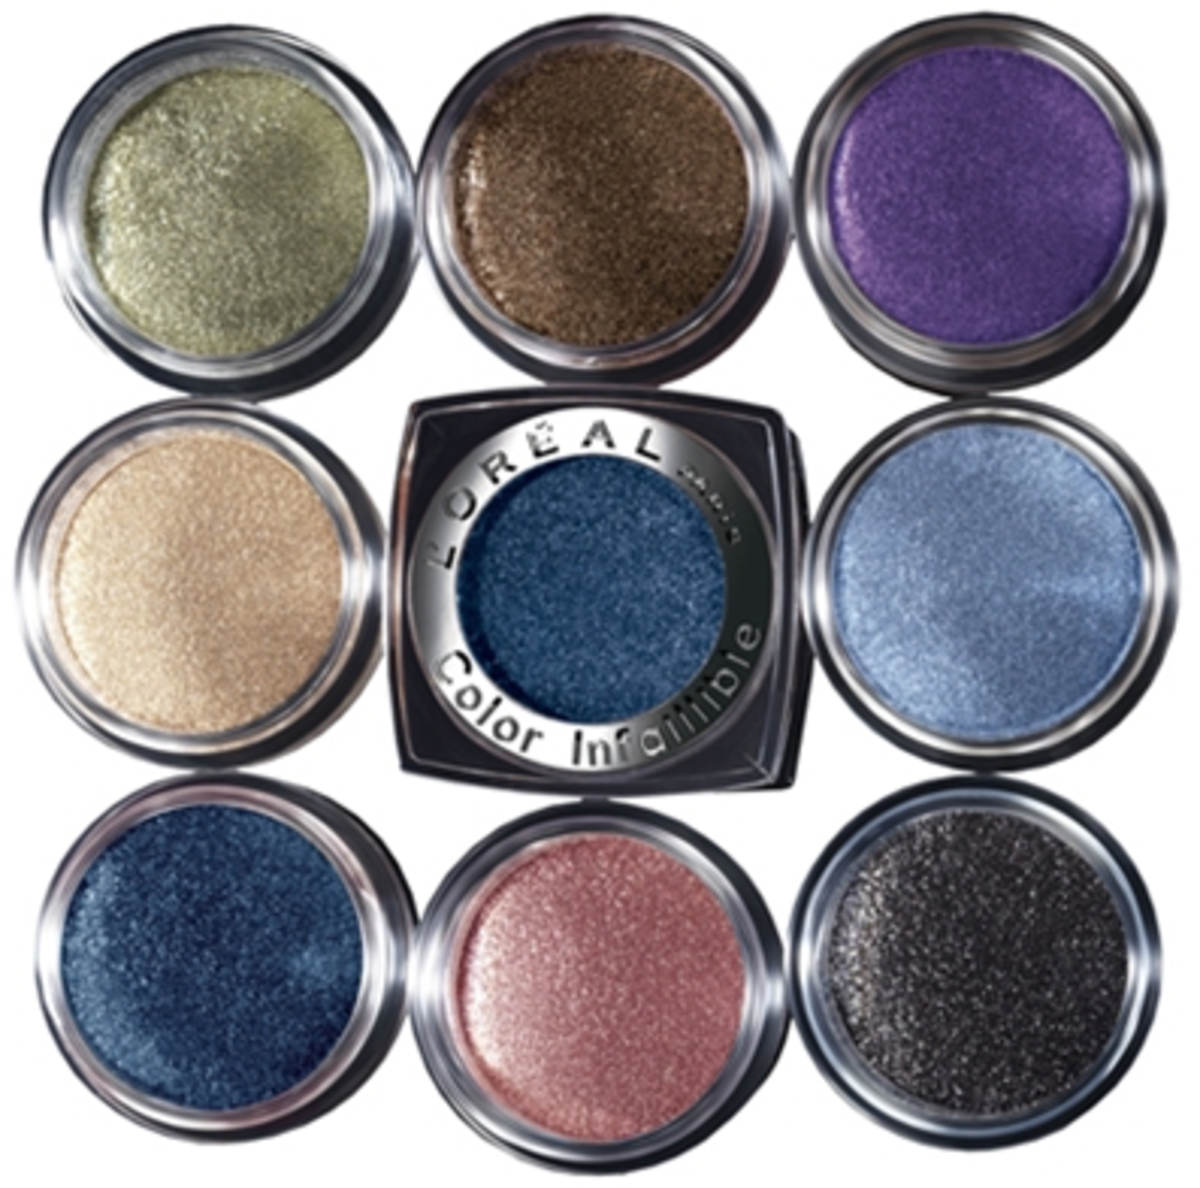 LOreal-Color-Infallible-Eye-Shadow